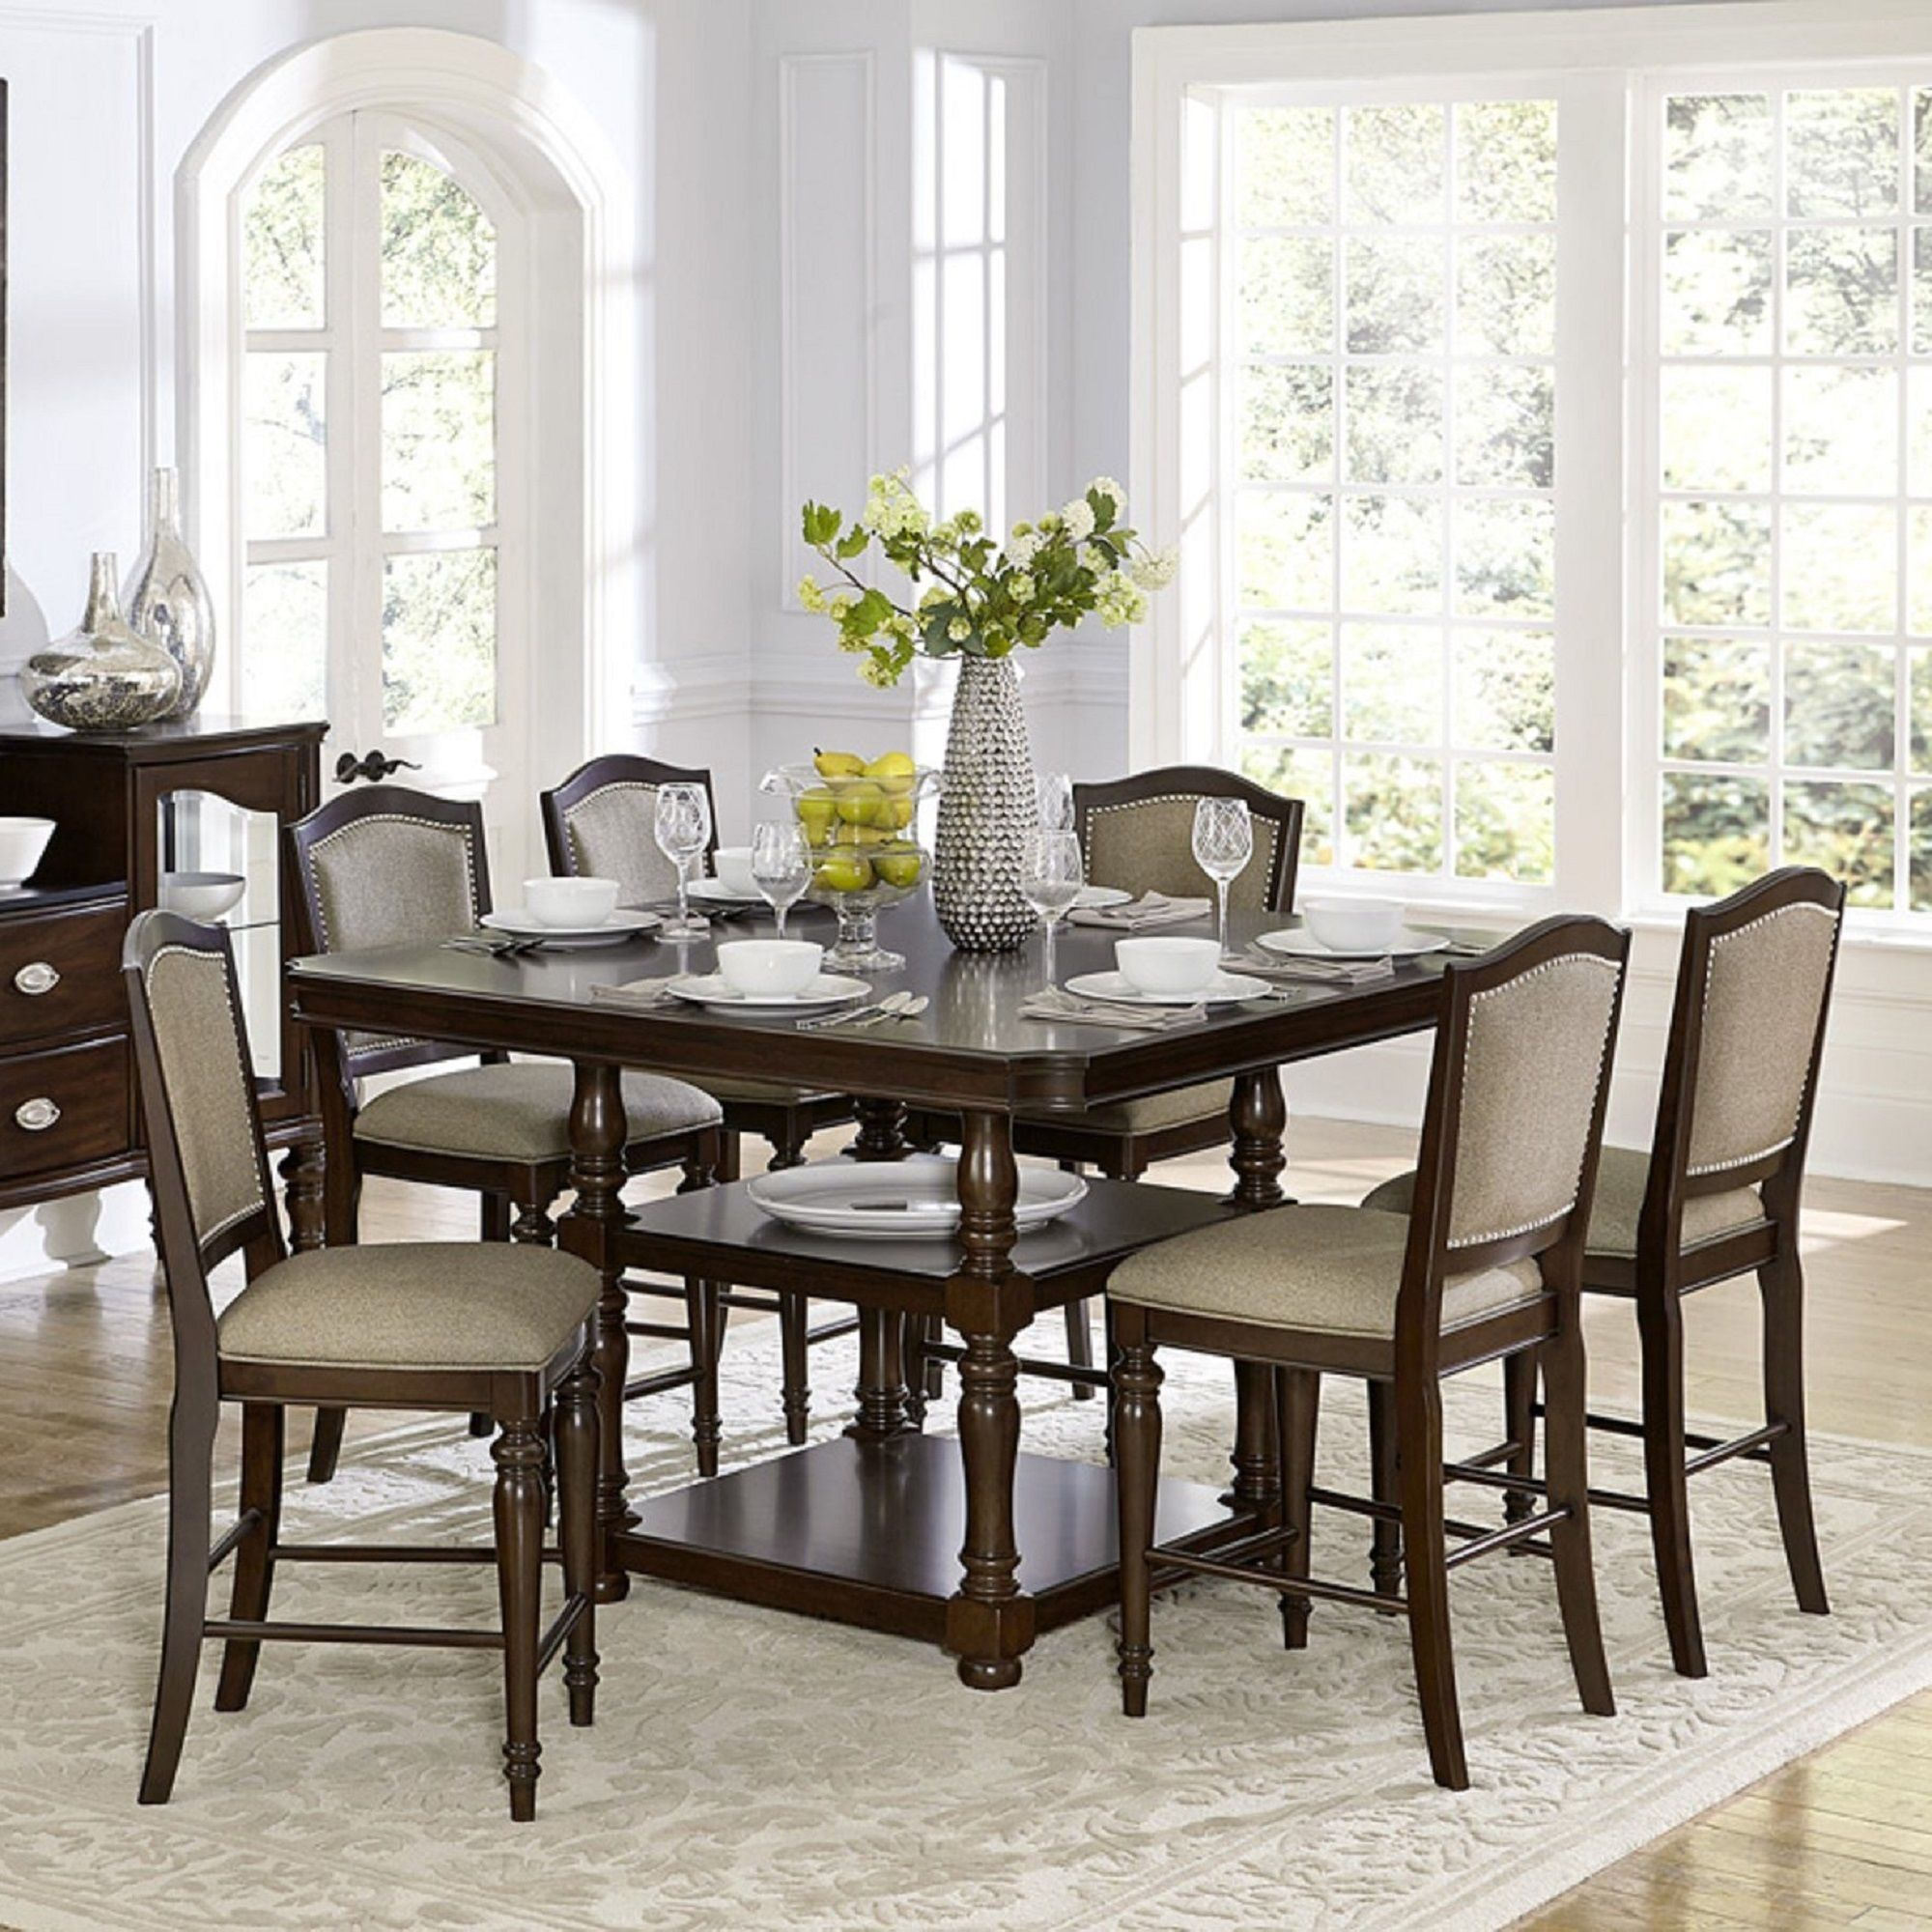 counter room sophia dining piece set coaster sets look marble height